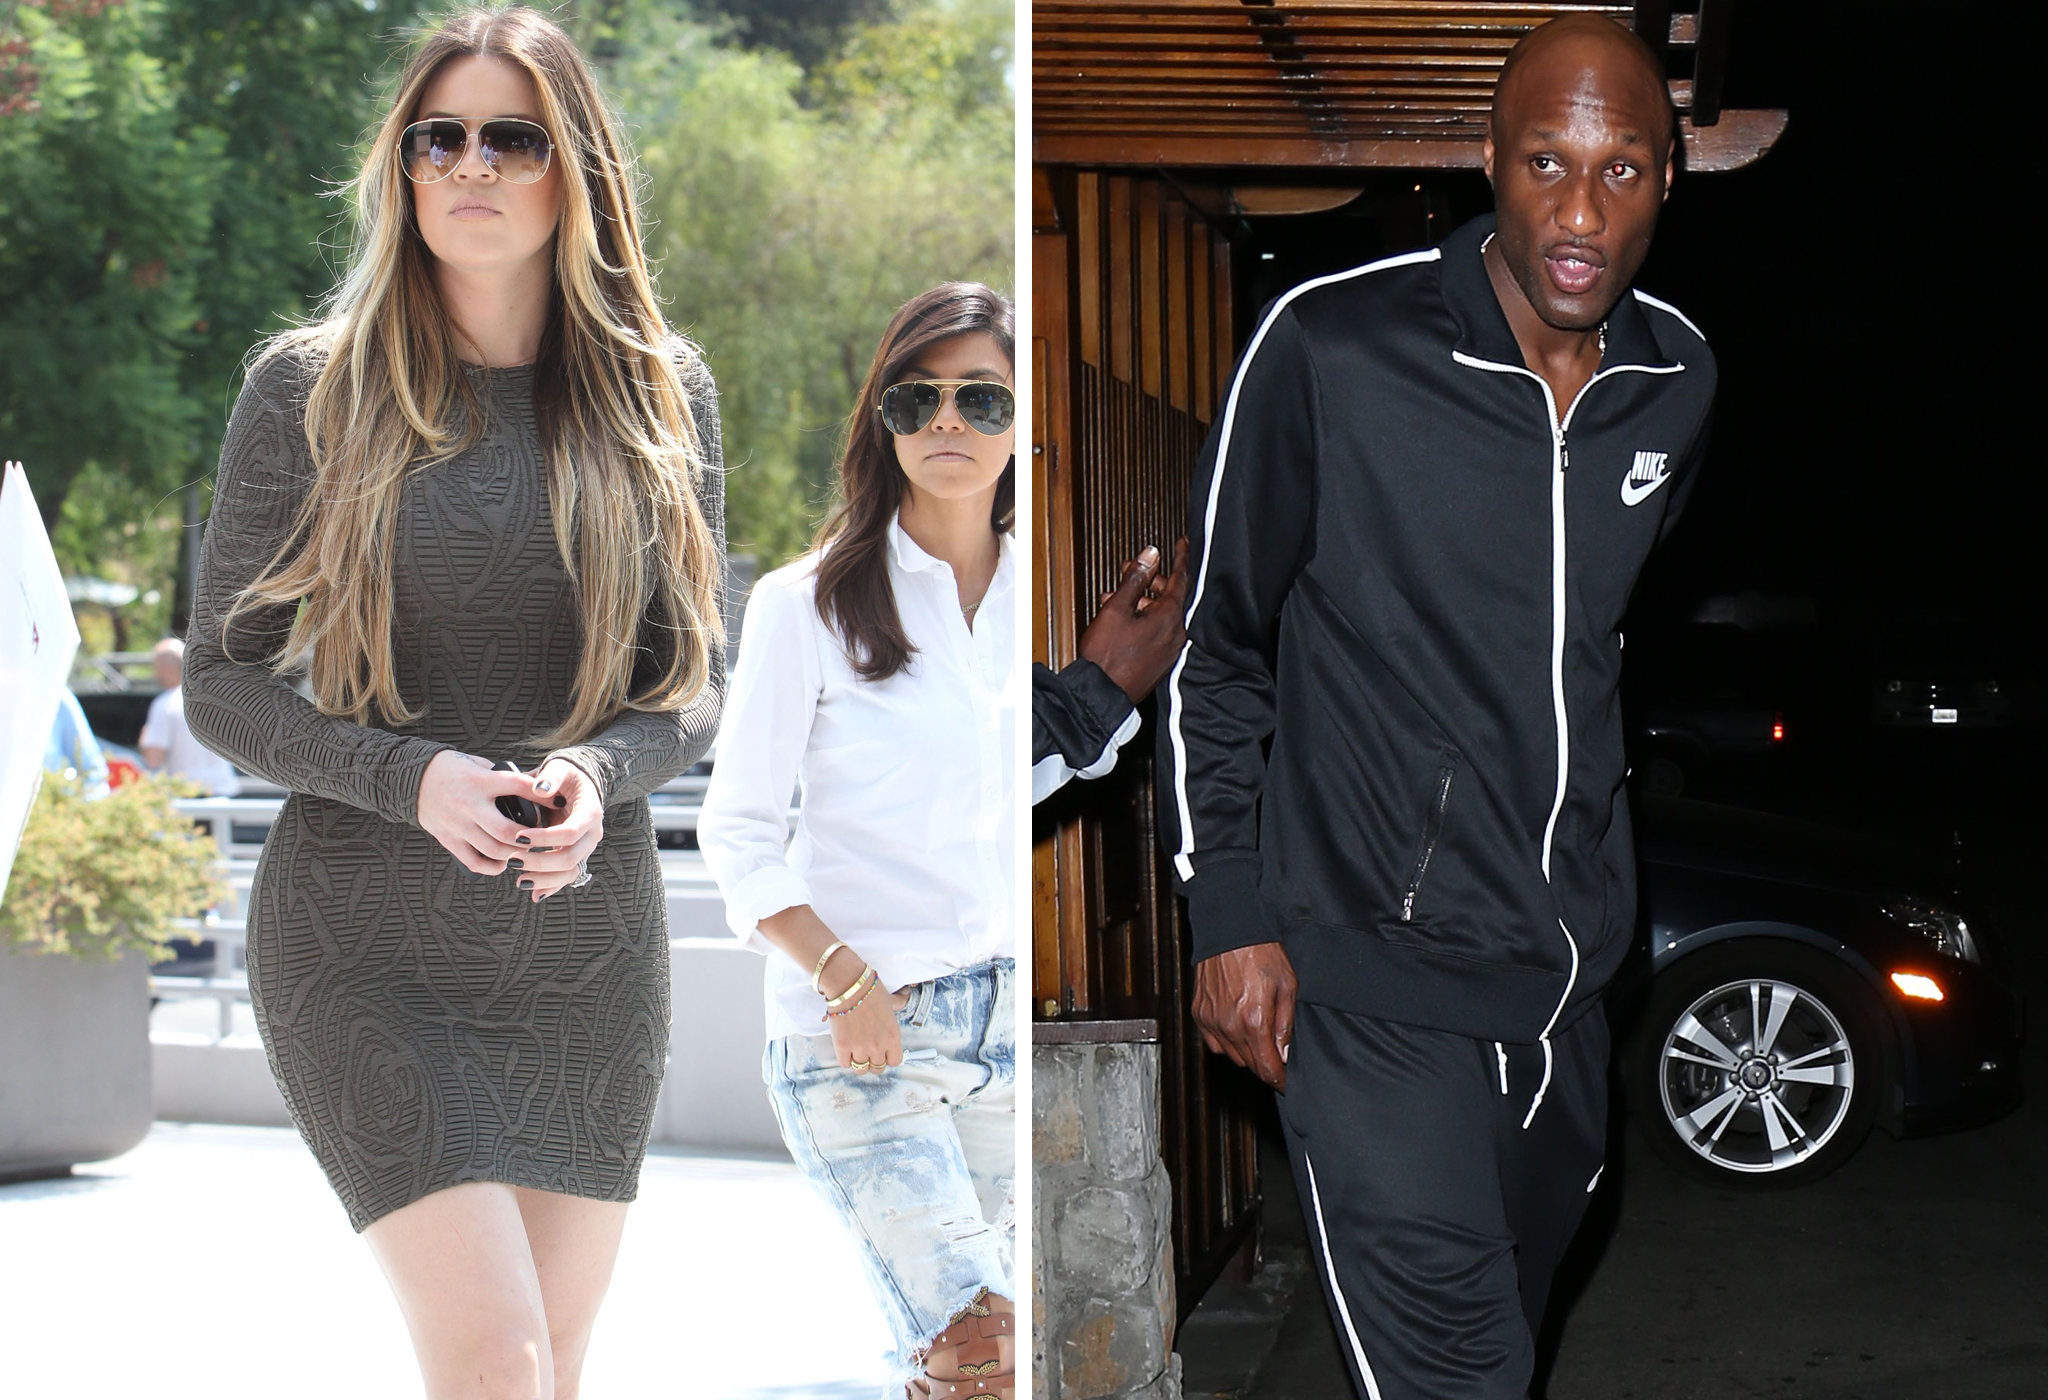 Khloe Kardashian and Lamar Odom (FameFlynet/Splash News)